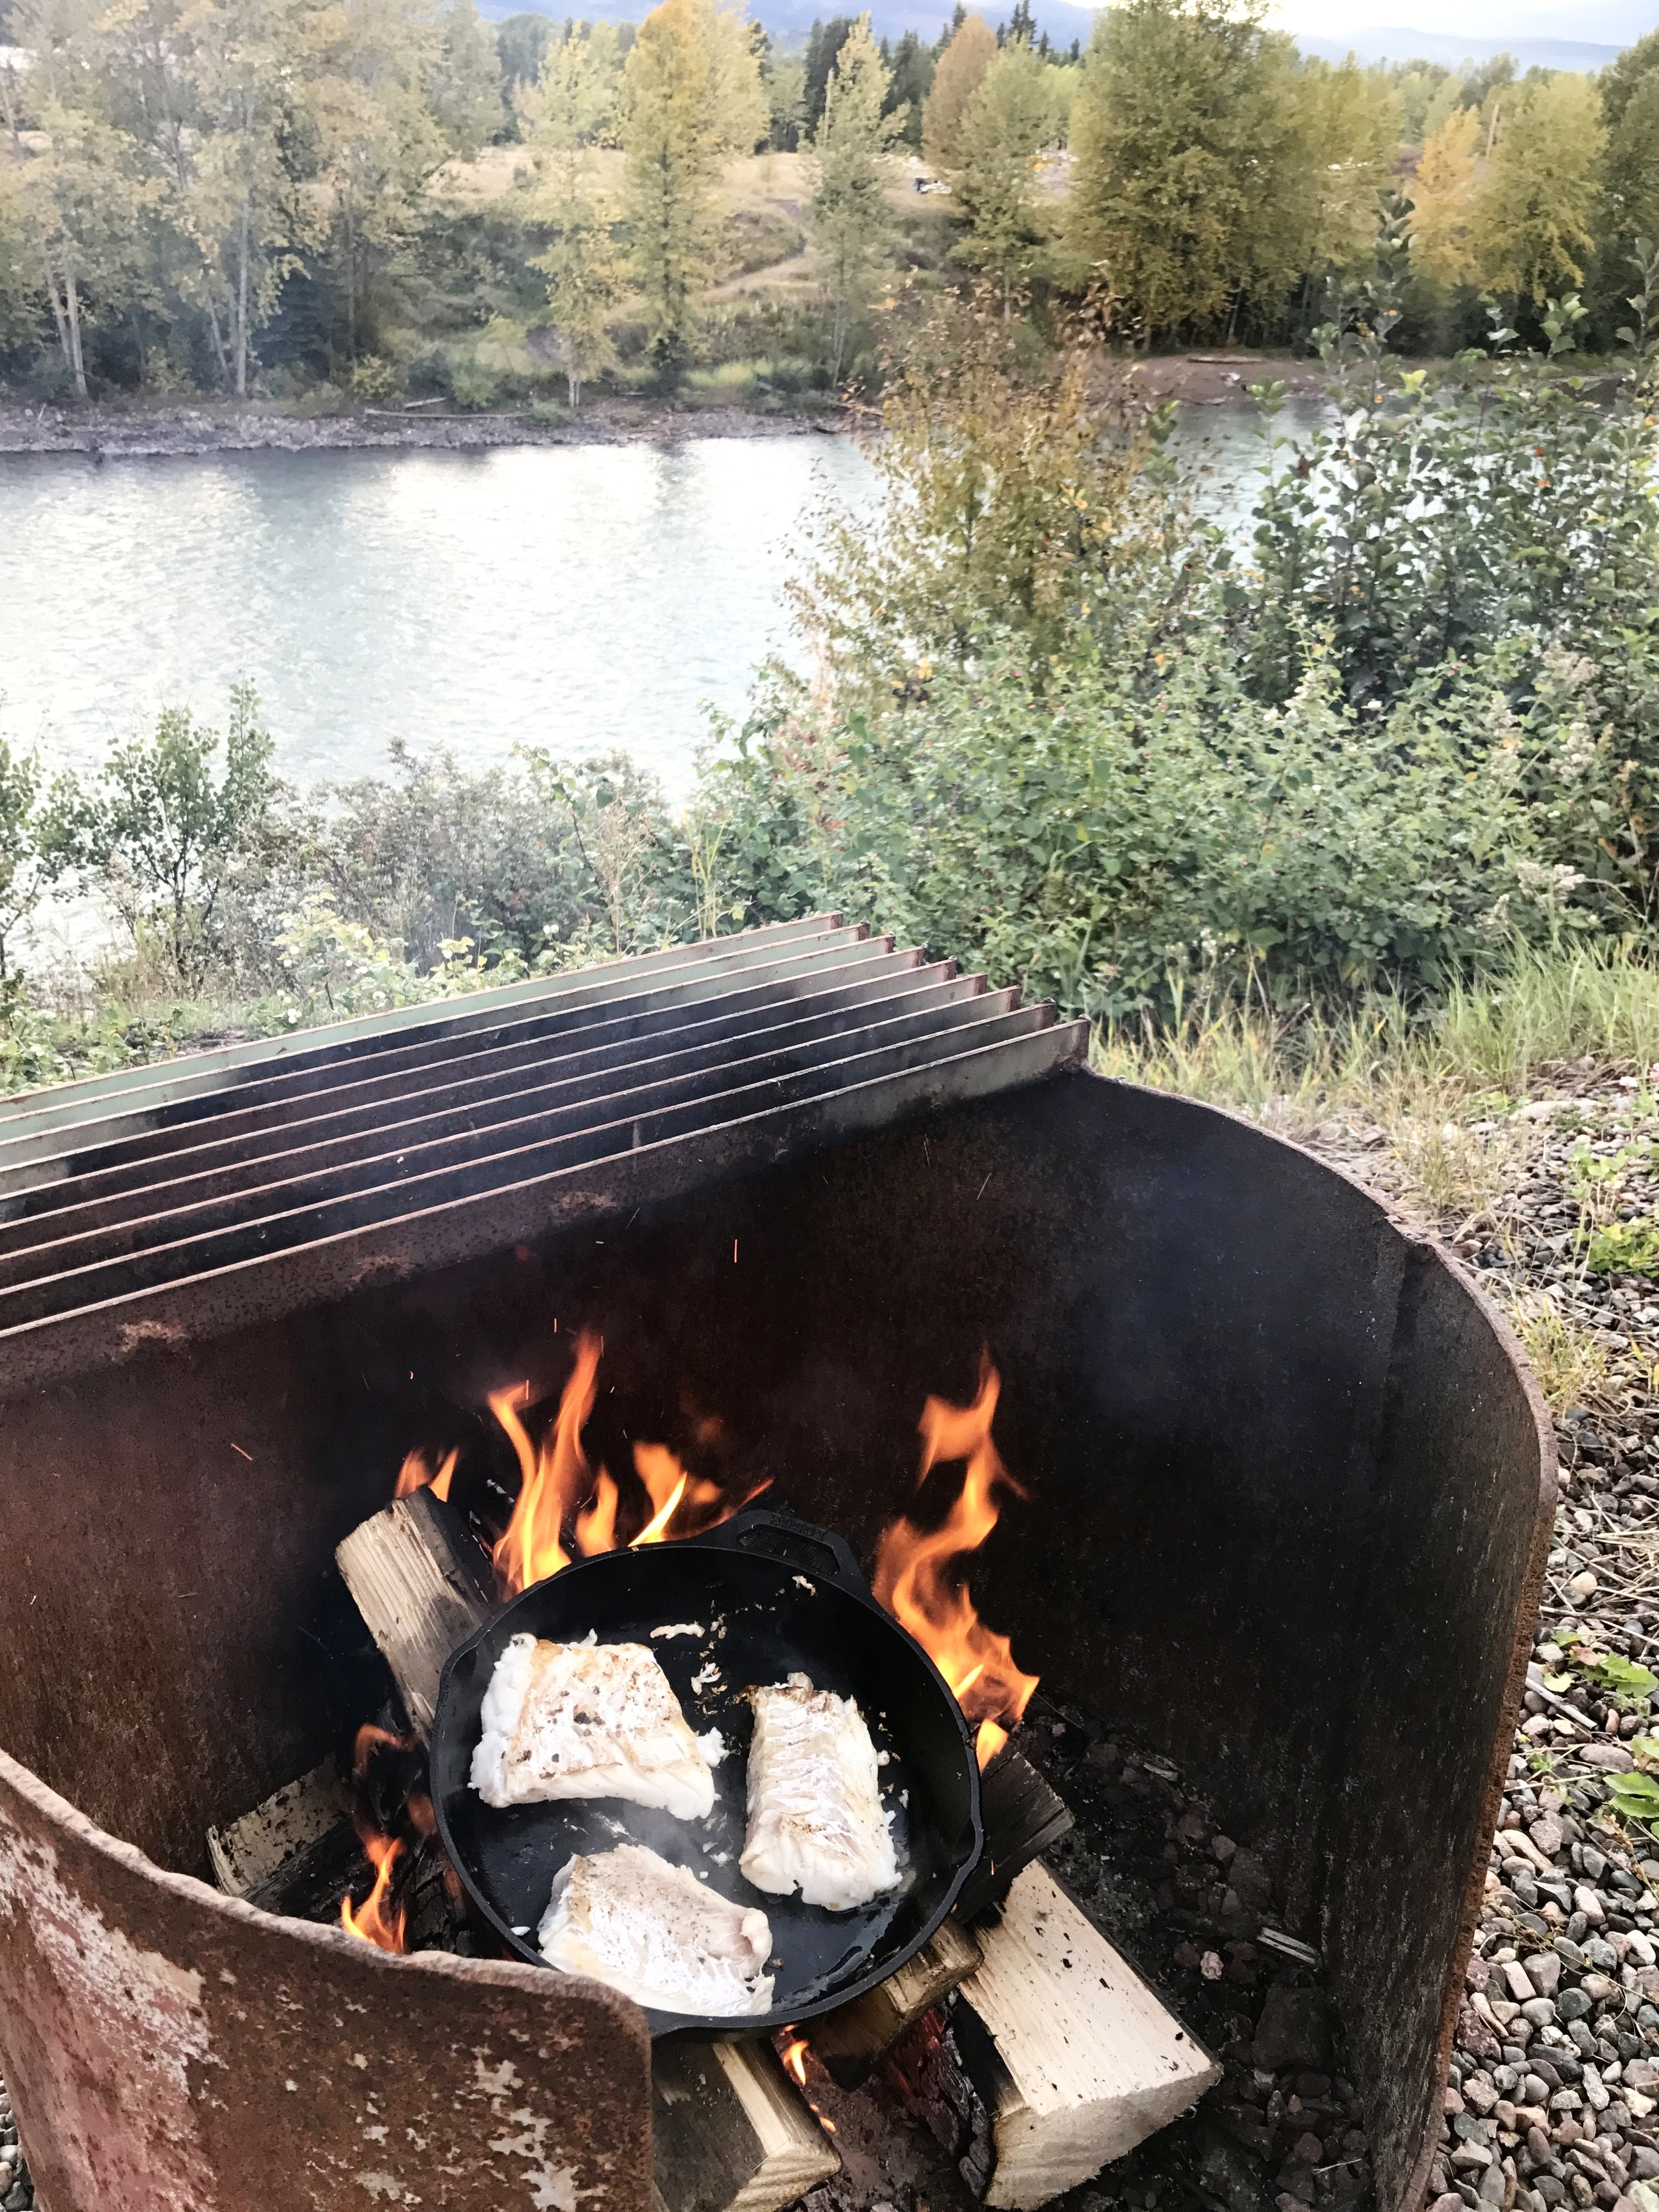 Cooking some local fish over a fire at our campsite